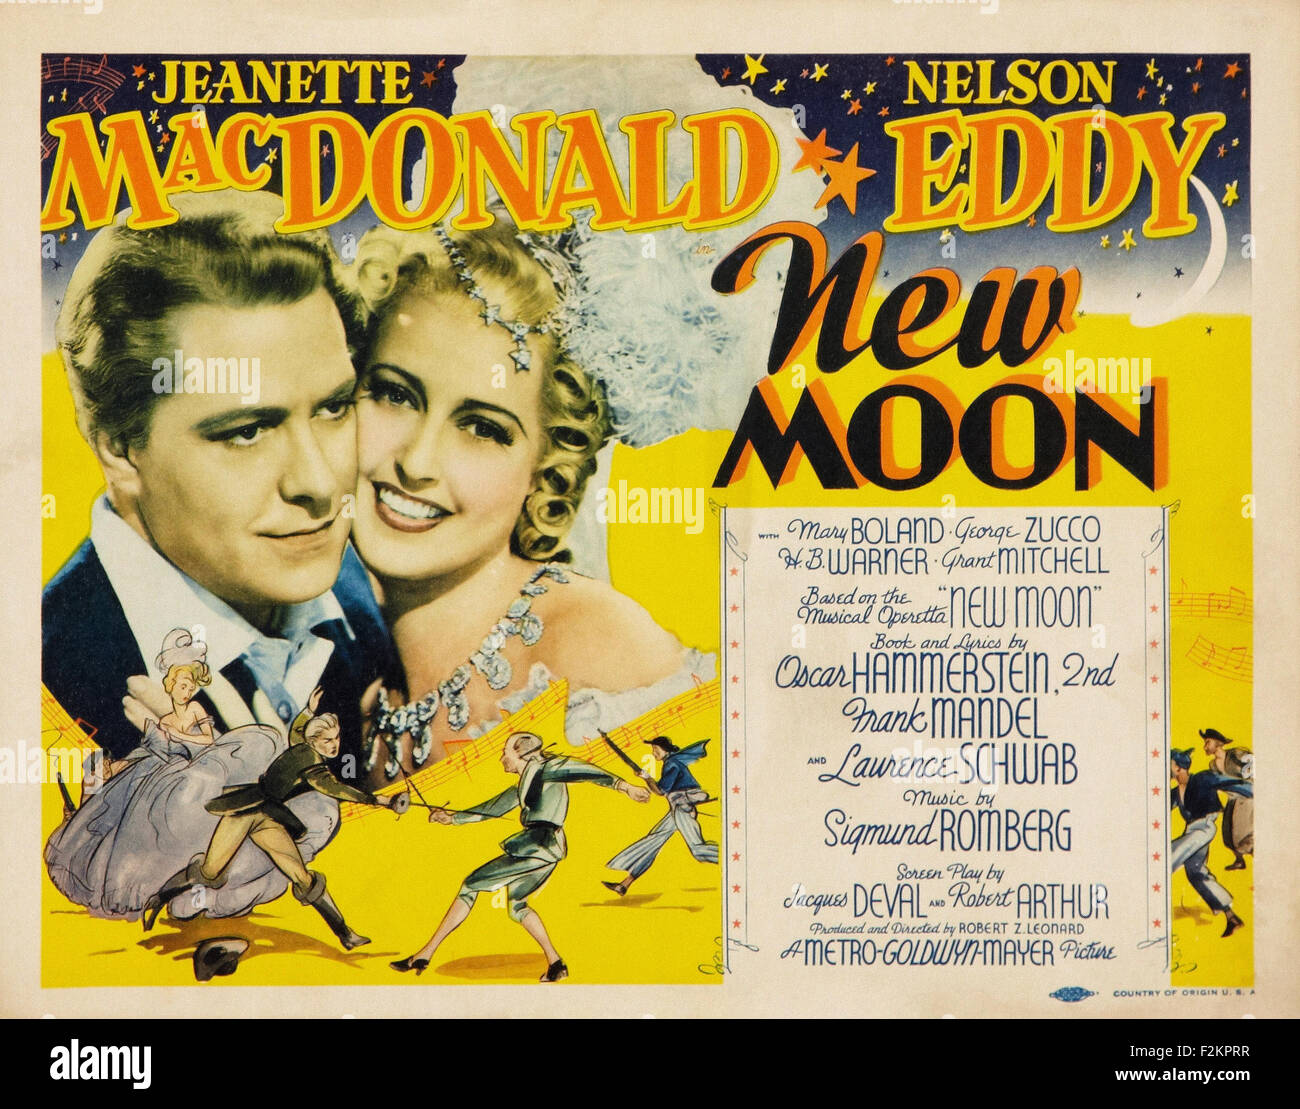 New Moon (1940) - Movie Poster - Stock Image